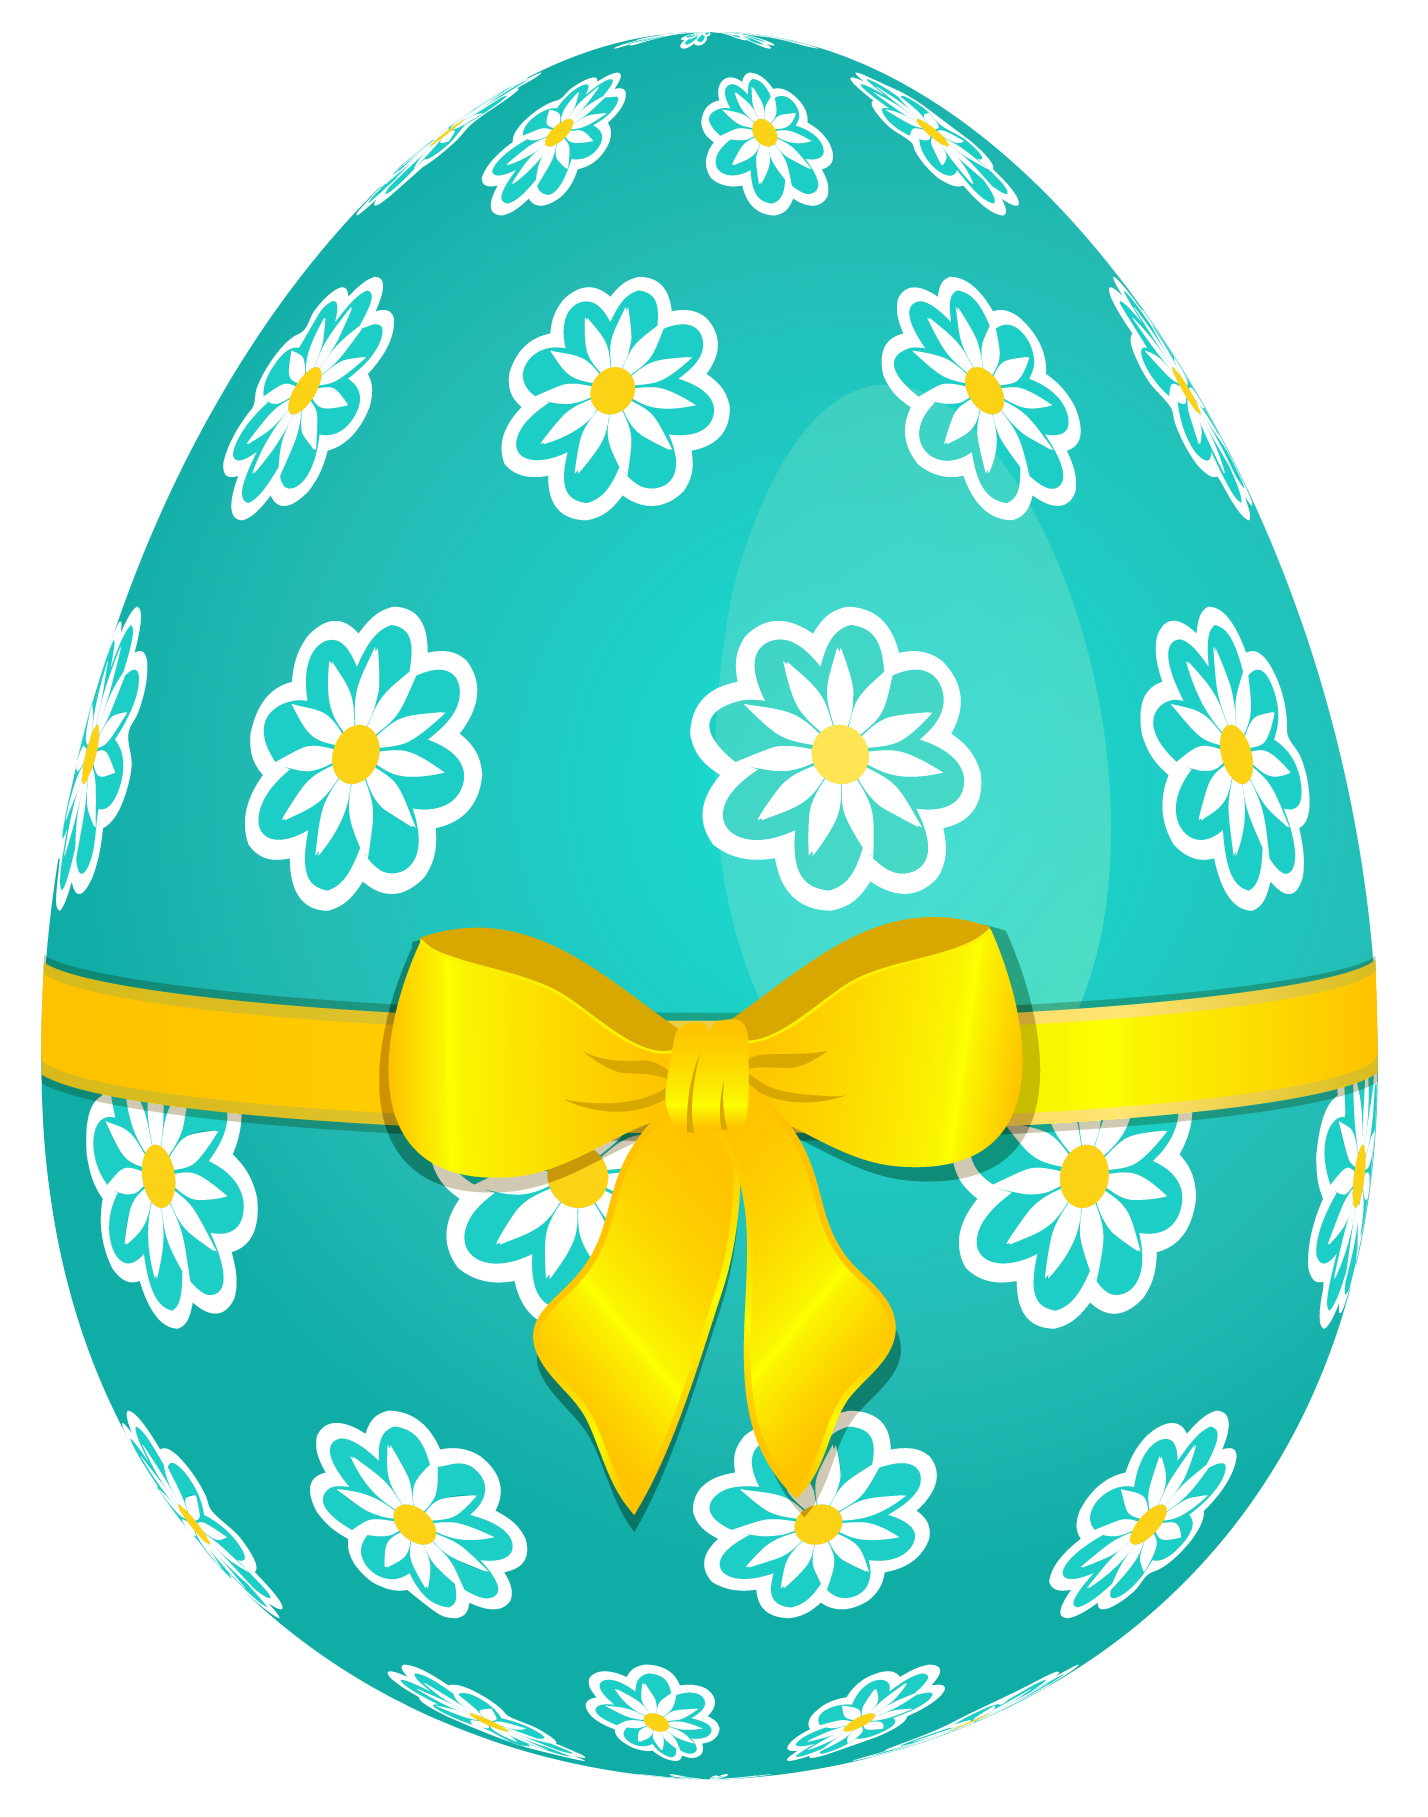 Easter egg frame clipart png vector free library Easter egg clipart png - ClipartFest vector free library